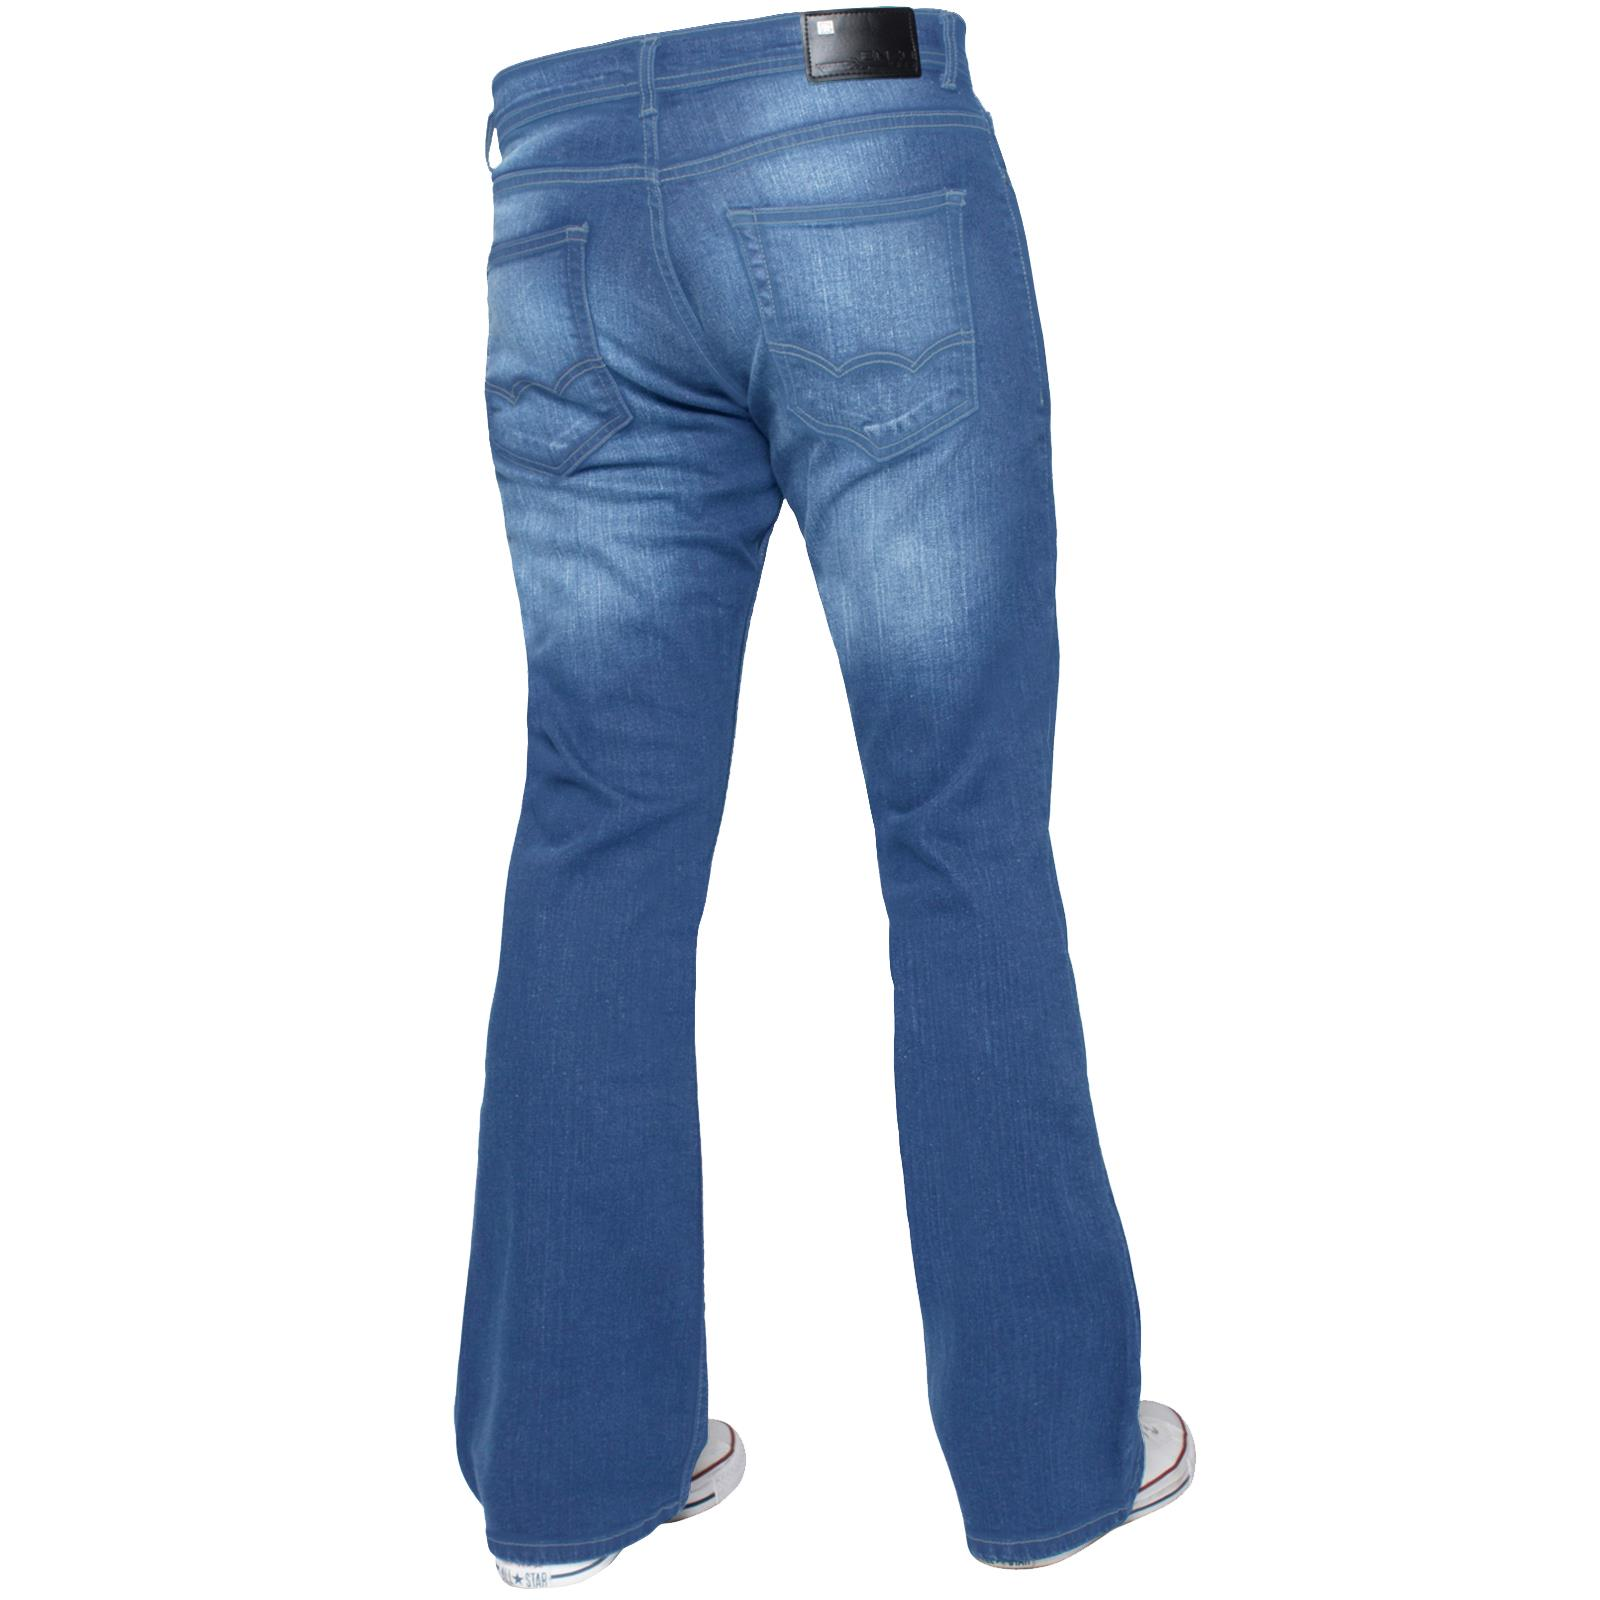 Mens-Straight-Bootcut-Jeans-Stretch-Denim-Pants-Regular-Fit-Big-Tall-All-Waists thumbnail 42